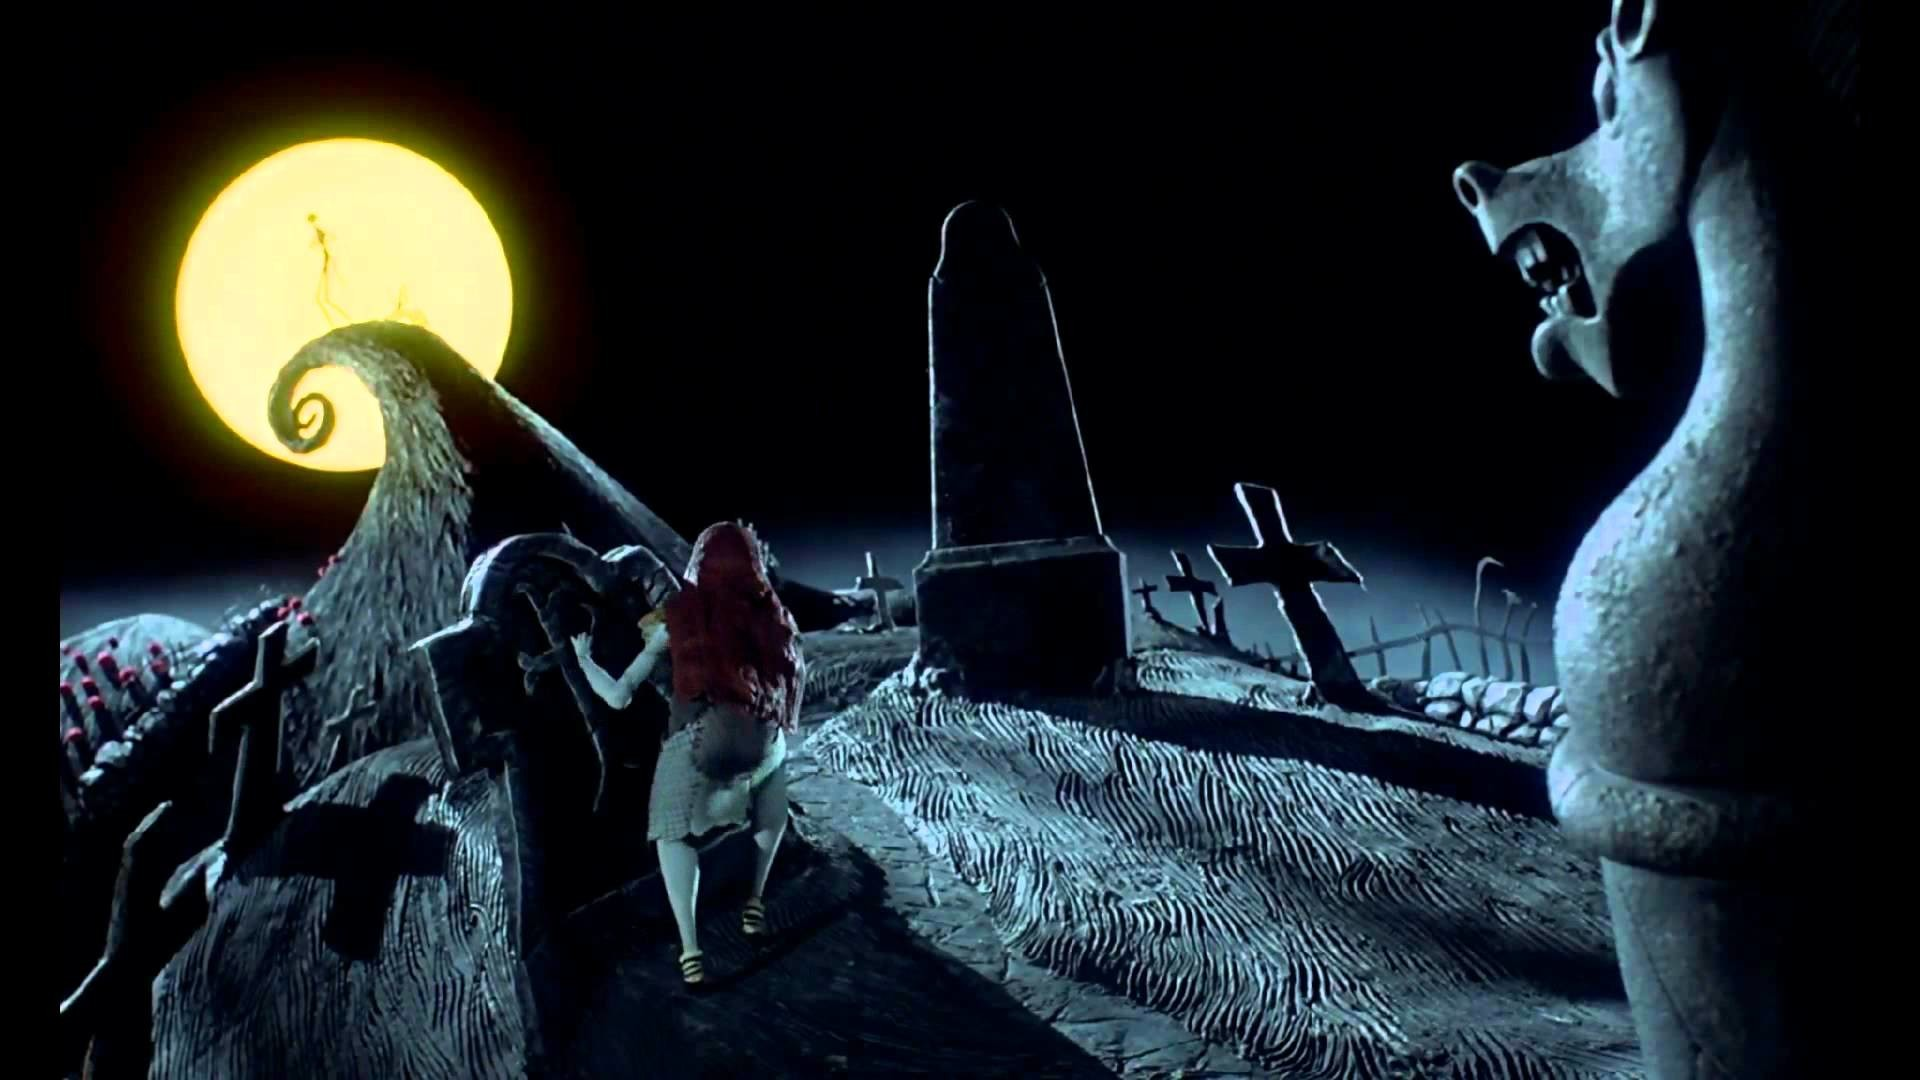 1920x1080 The Nightmare Before Christmas - Jack the pumpkin king (1080p HD) - YouTube